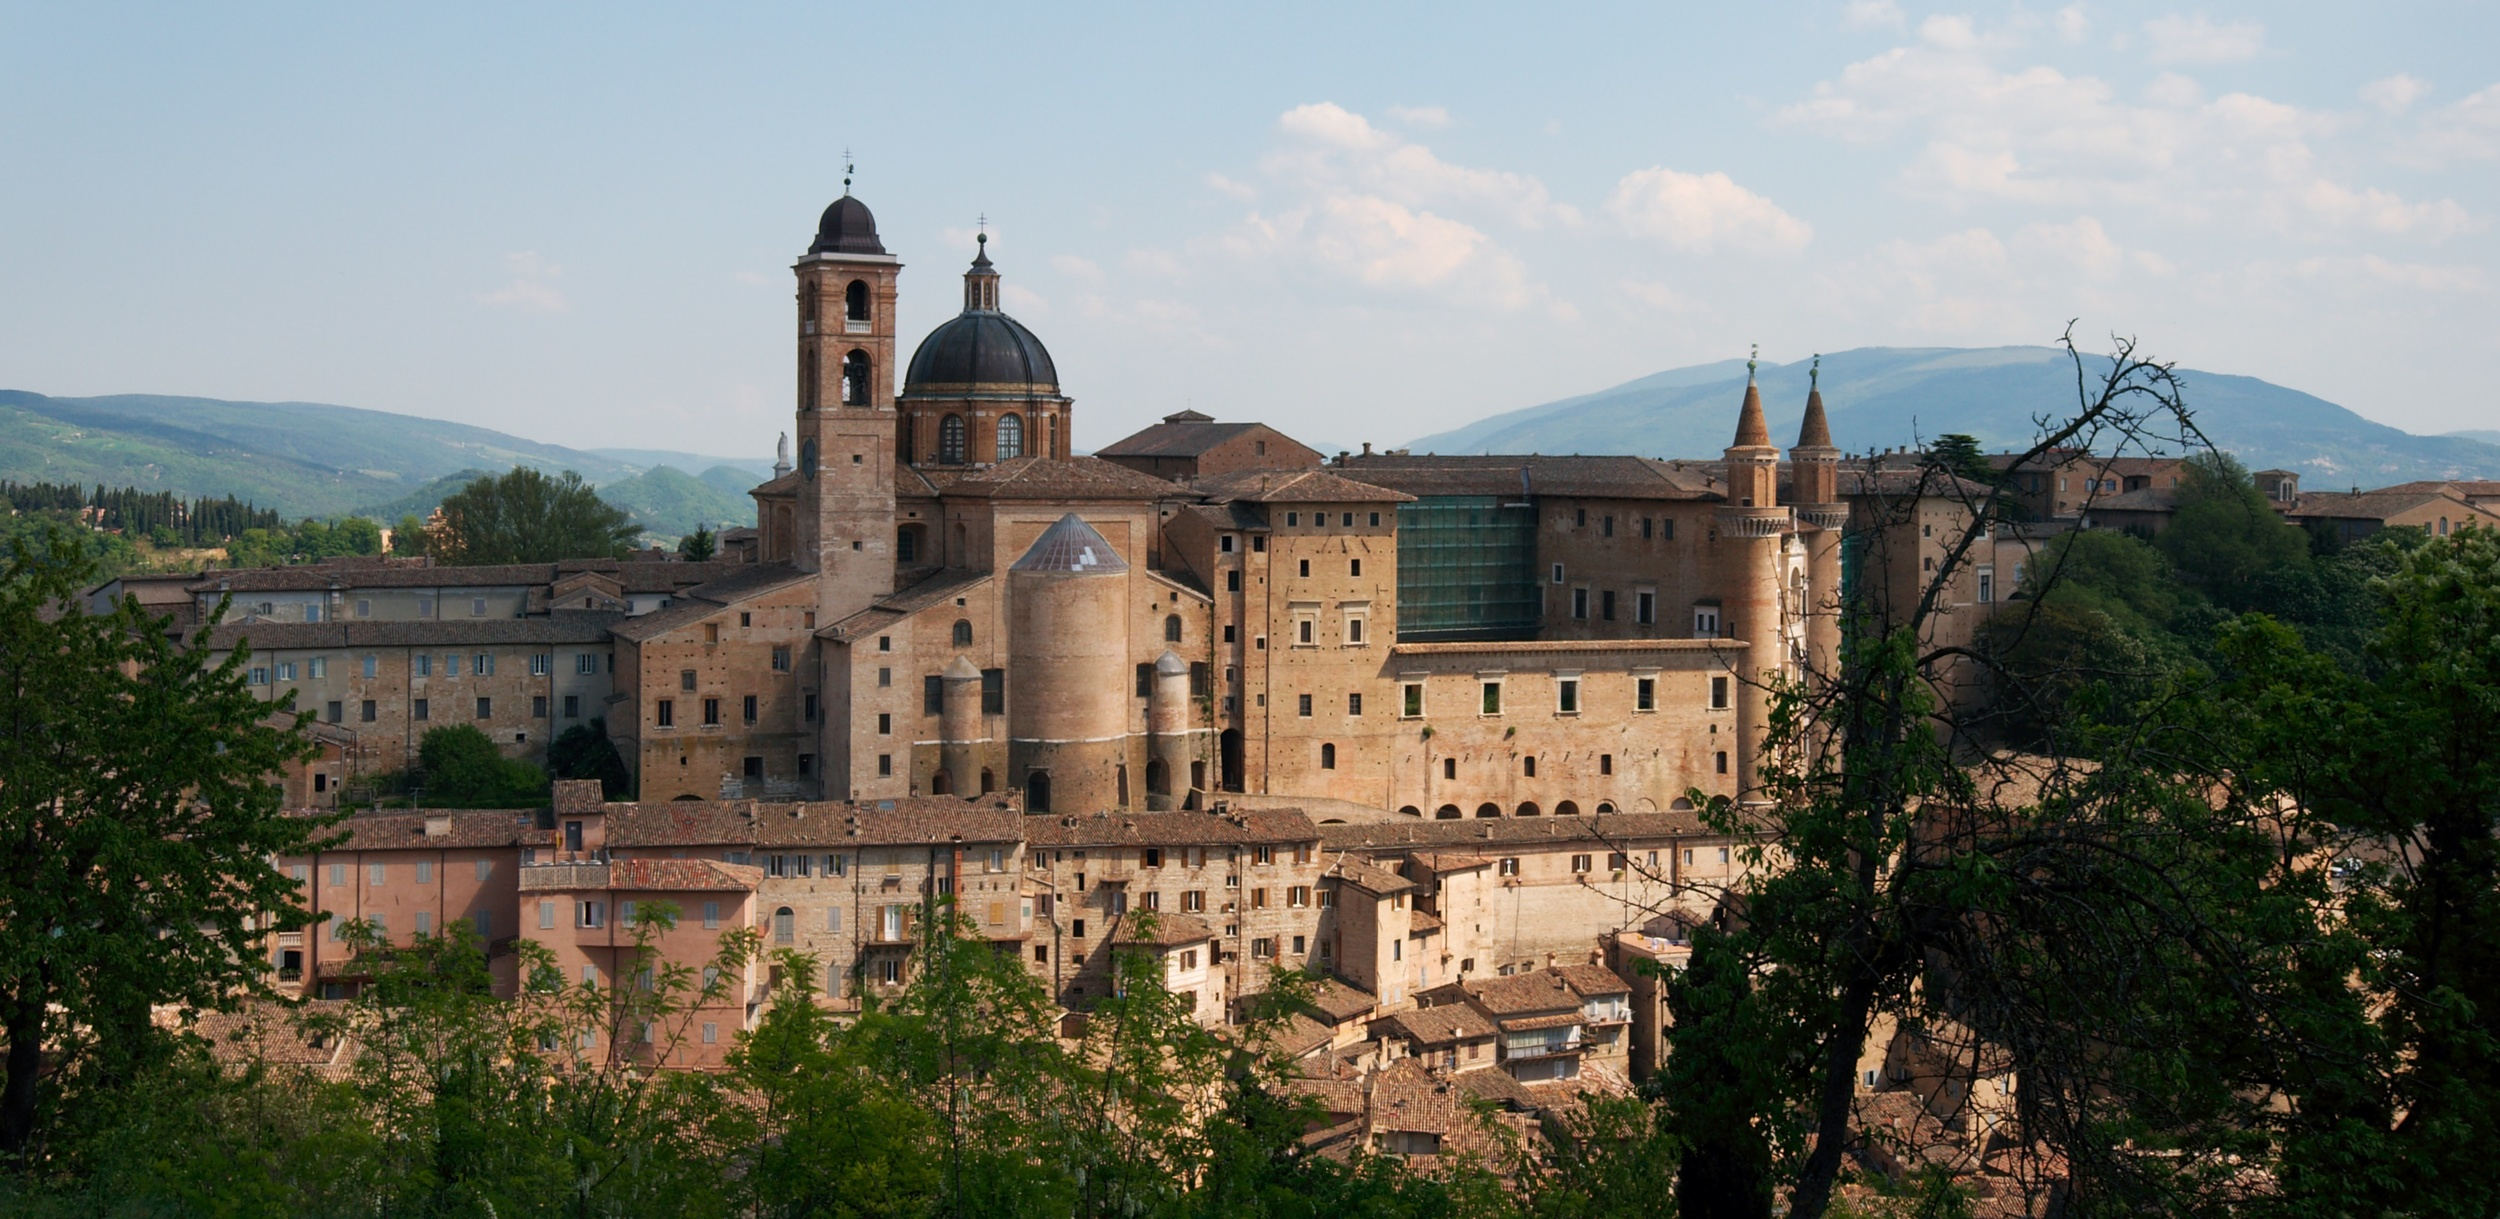 """Urbino-palazzo e borgo"" by Il conte di Luna - Flickr. Licensed under CC BY-SA 2.0 via Wikimedia Commons"